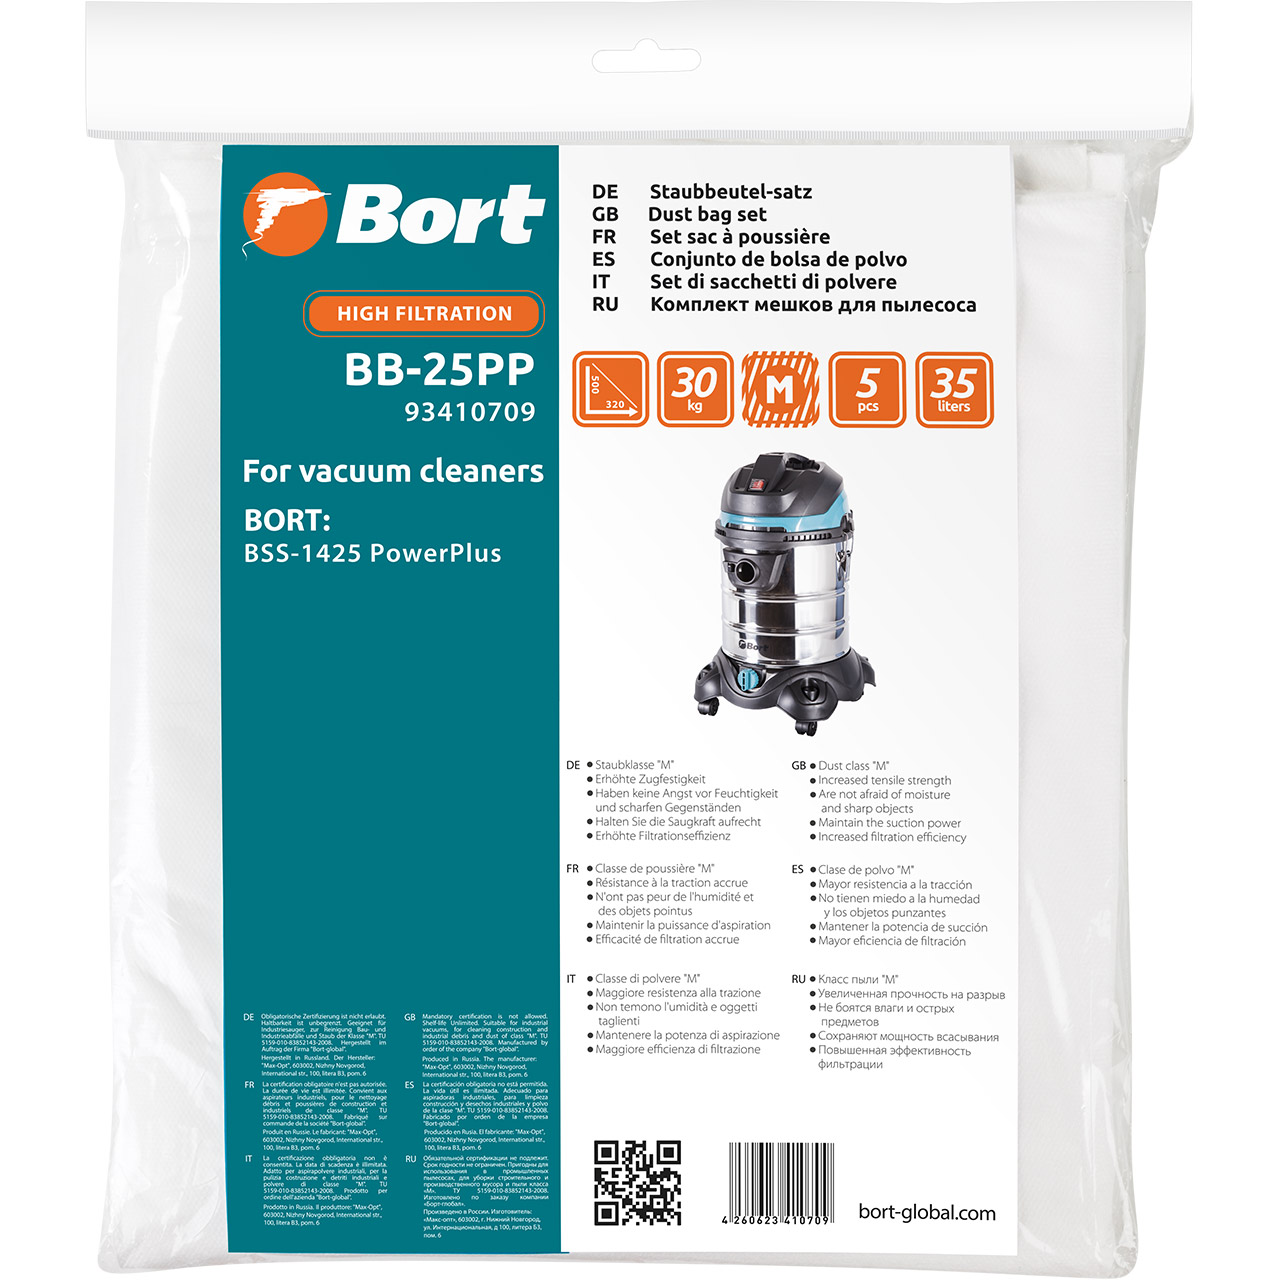 Bags set dust collection for vacuum Cleaner bort BB-25PP (volume 35, 5 pcs, suitable for BSS-1425PowerPlus) стоимость